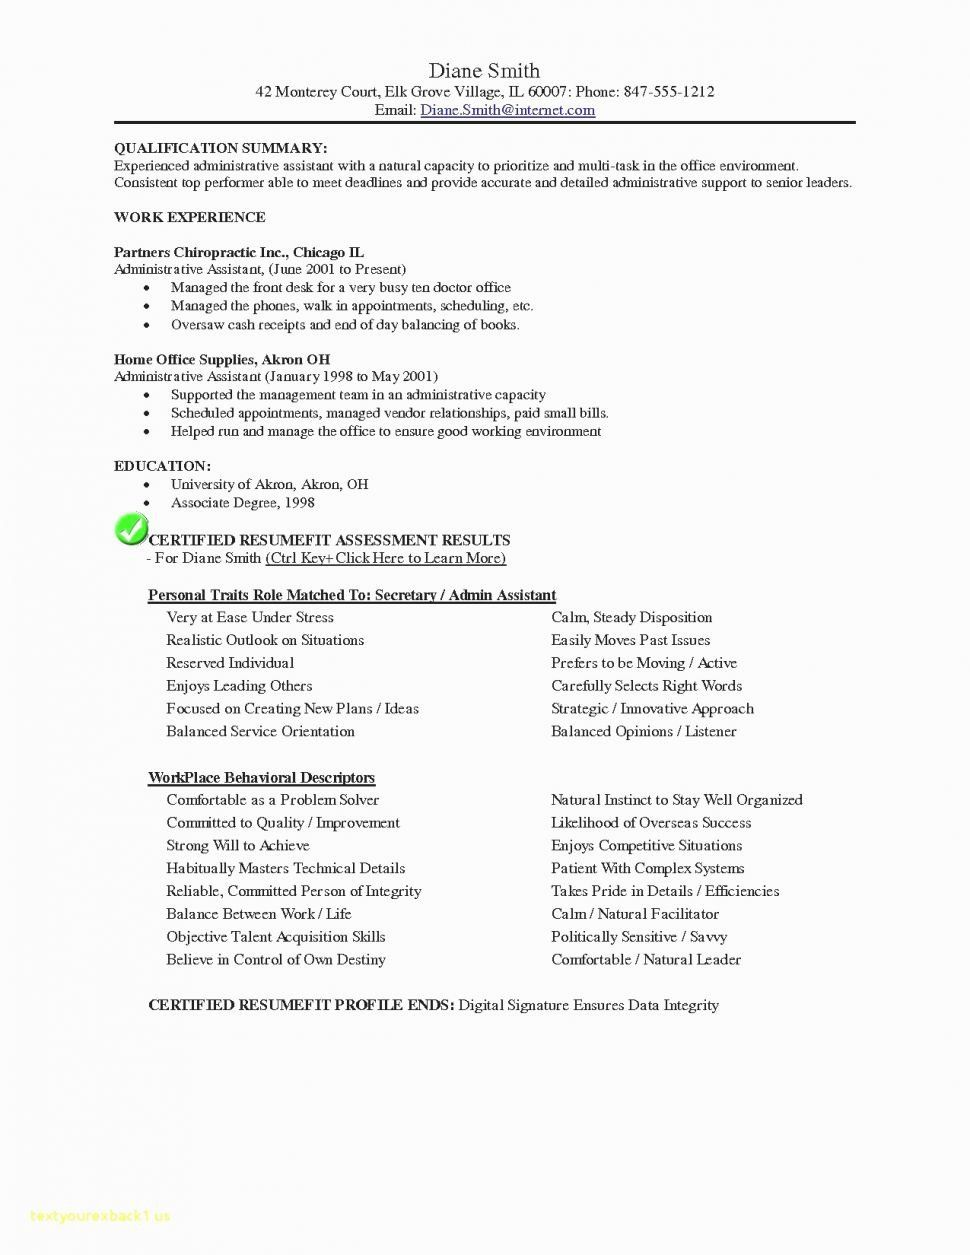 Model Release Form Template Free Unique Hairstyles Free Creative Resume Templates Smart Fre Teacher Resume Best Resume Template Administrative Assistant Resume